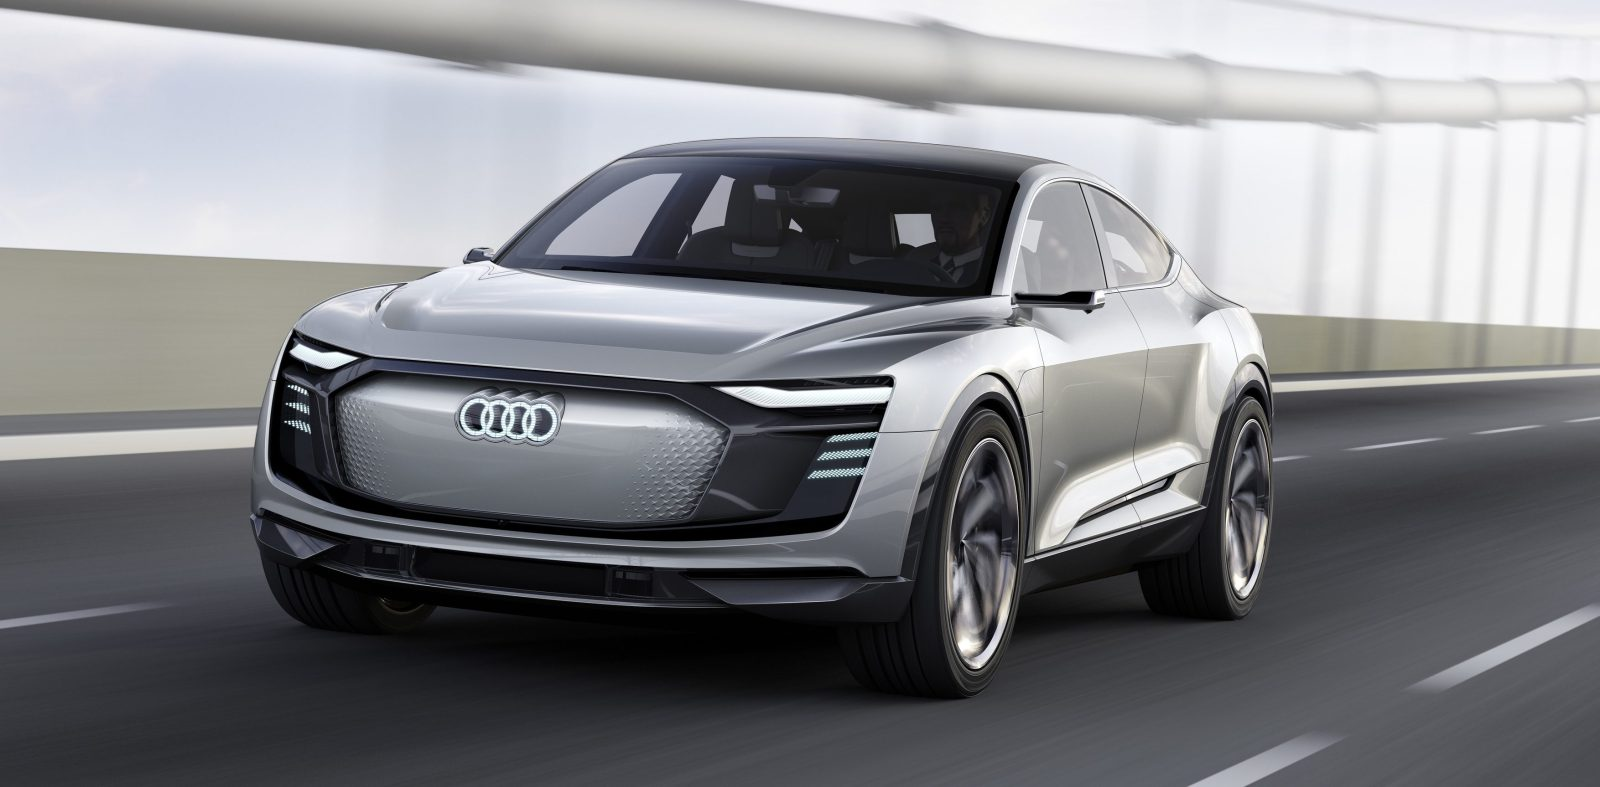 Audi Will Build Electric Cars In All Factories Worldwide Expanding From Previous Plans